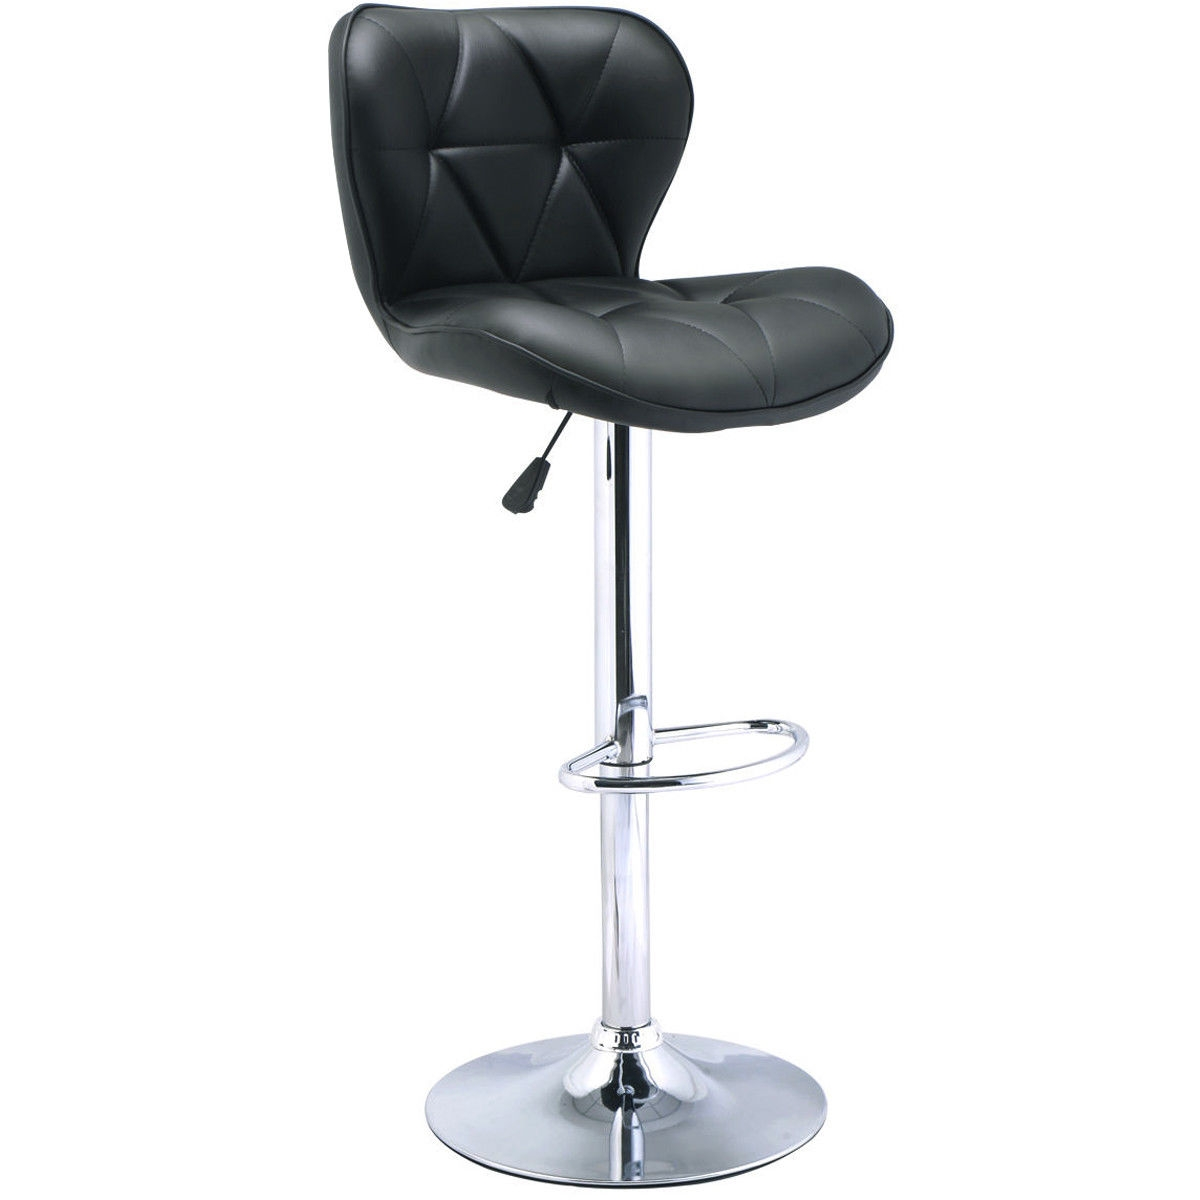 "This swivel bar stool is perfect to decorate your living room and also adds a contemporary touch to your office, bar or restaurant. The bar stool is made of PU leather which is wear-resistant, anti-aging, breathable and no peculiar smell. Featuring a chromed steel base and footrest, the stool is durable and stable. The soft cushion is filled with high-density stereotypes sponges. The backrest with stylish and modern design offers extra comfort. The height can be adjusted easily and safely by a handle and the bar stool can swivel 360 degrees. What's more, it also has a 15.2"" rubber ring bottom to prevent floor from scratching. With ergonomic design, it is stylish and comfortable. Assembly is easy. Don't hesitate to buy it now! Brand new and high quality Comfortable backrest with stylish modern design 360-degree swivel Chromed steel base and footrest, durable and stable Wear-resistant, breathable, anti-aging and no peculiar smell Adopts ergonomic prin"